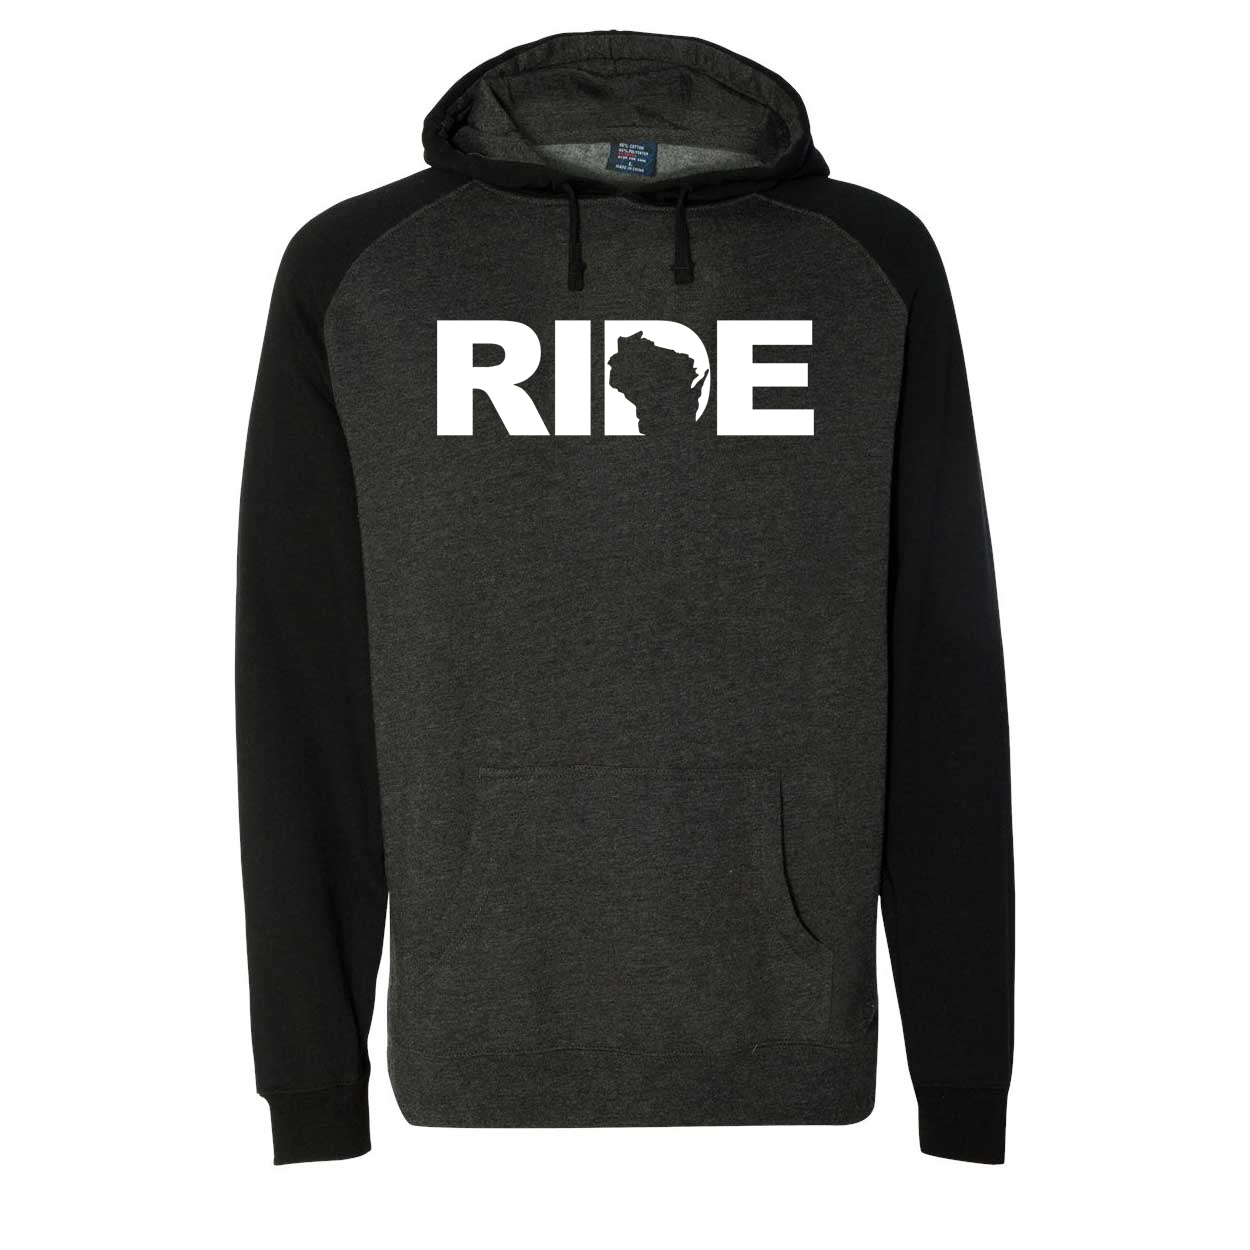 Ride Wisconsin Classic Raglan Hooded Pullover Sweatshirt Charcoal/Heather Black (White Logo)